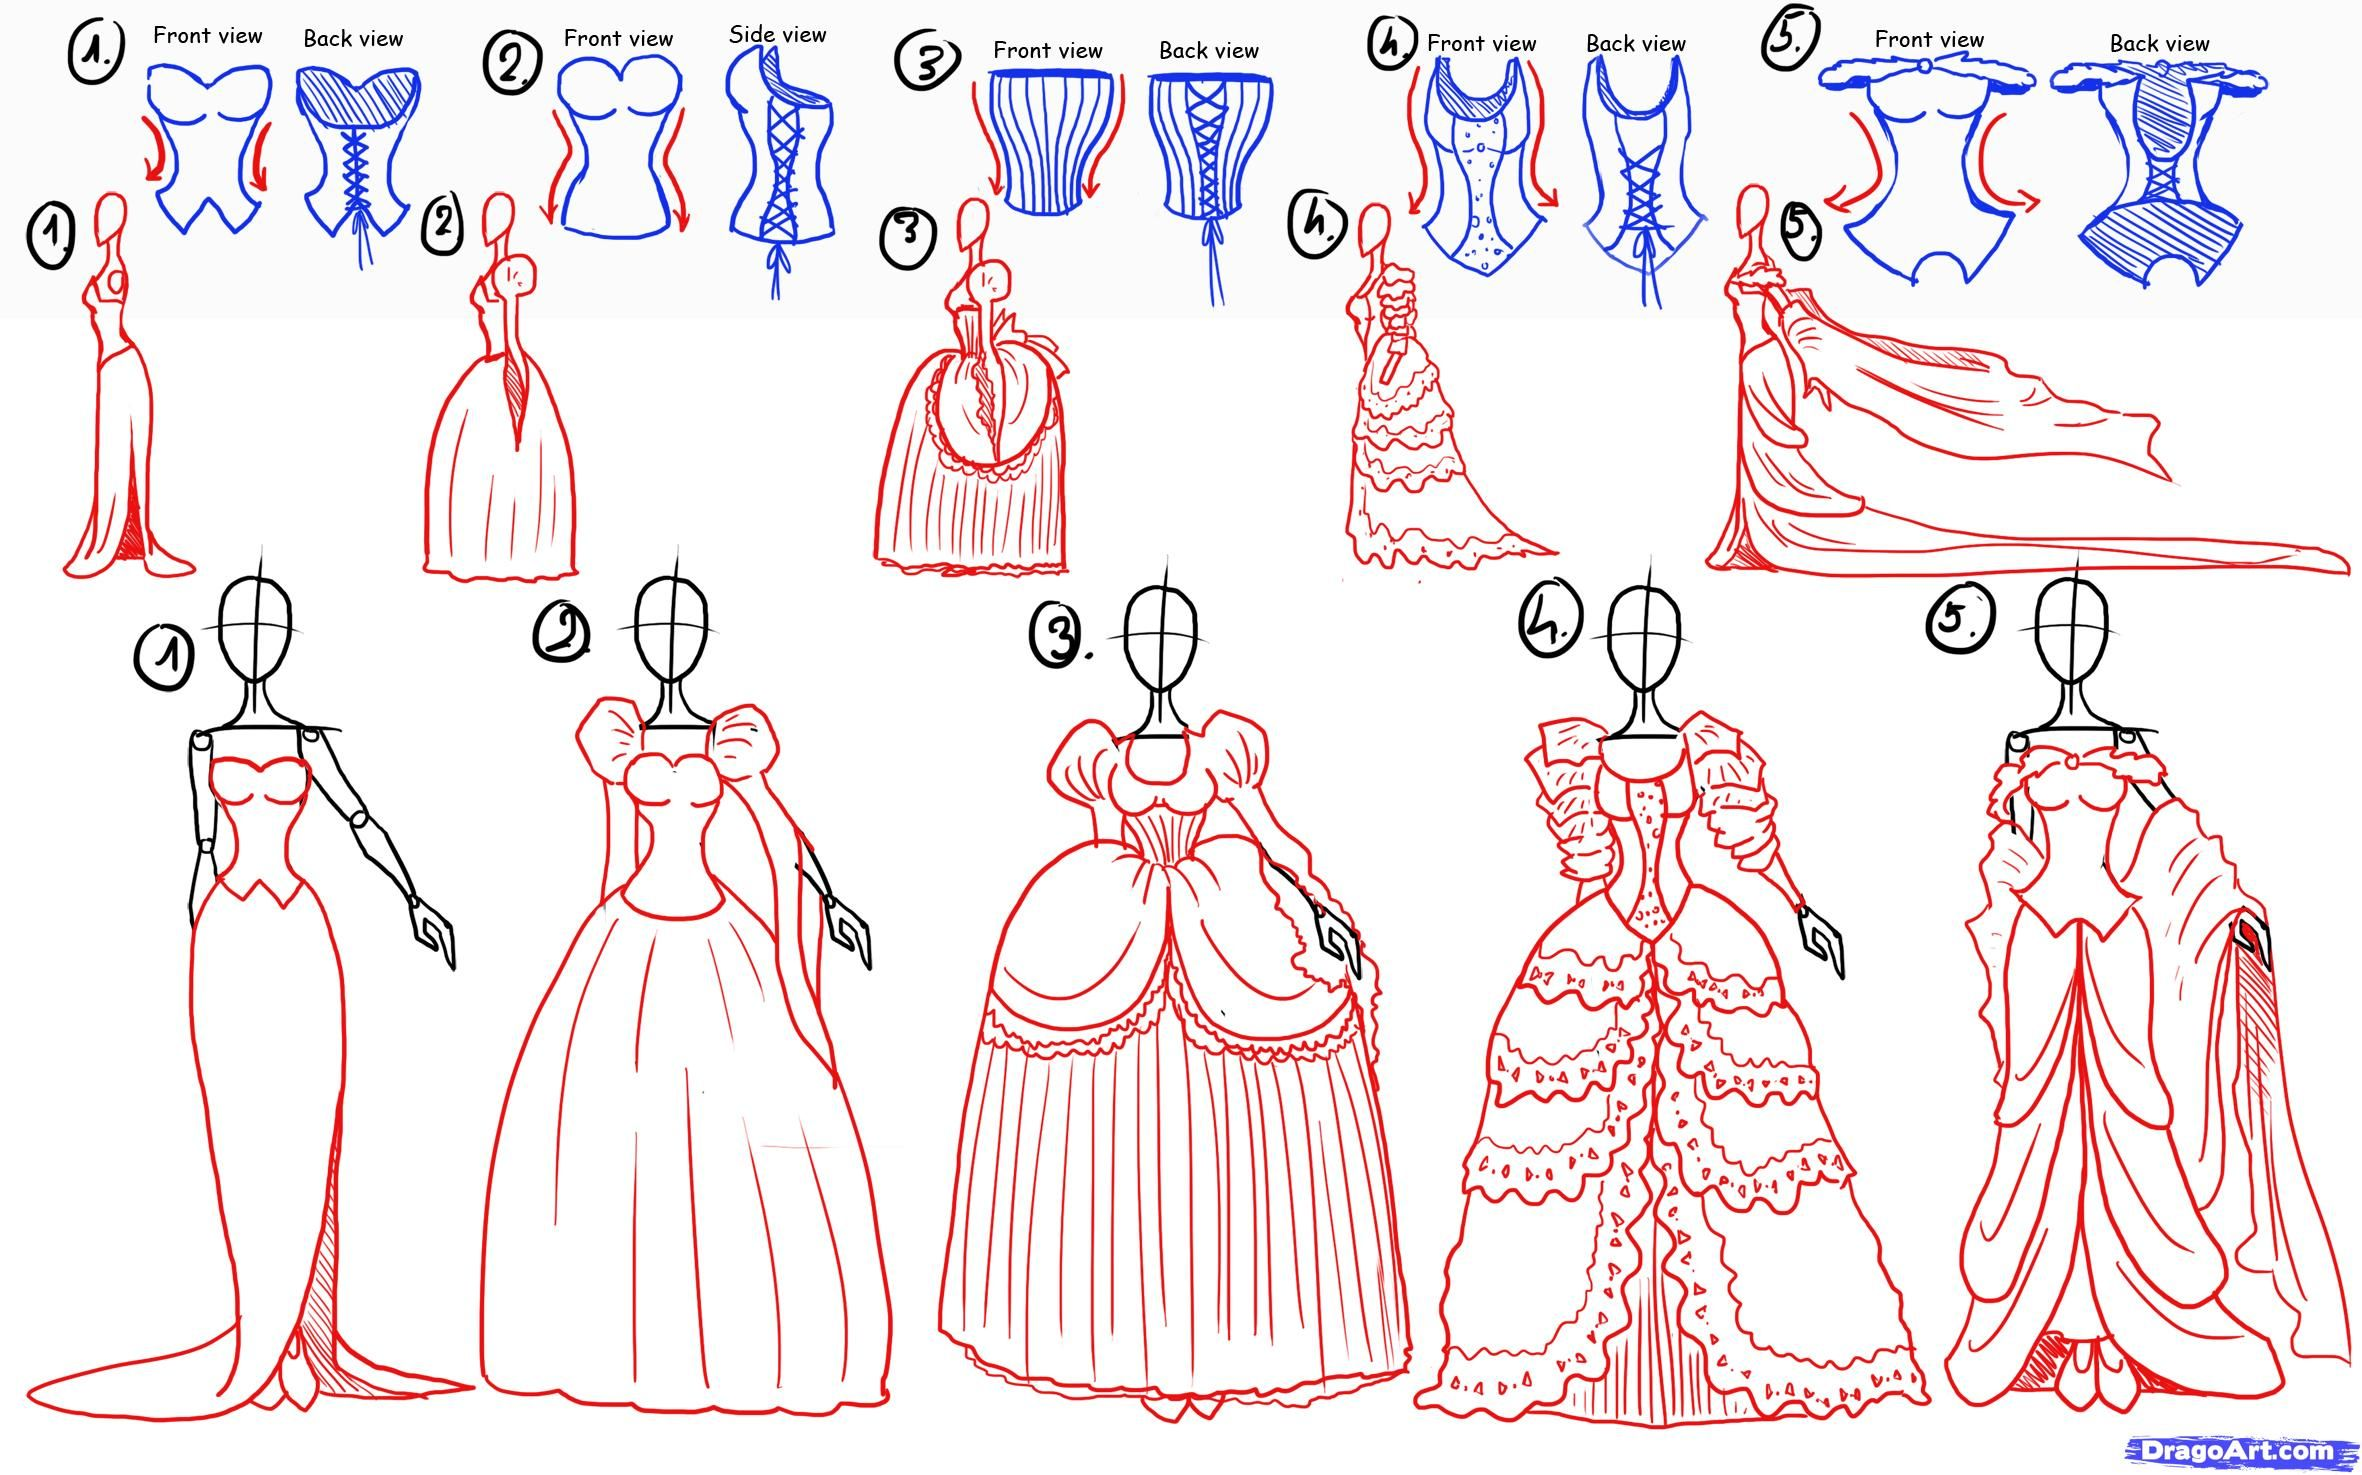 How To Draw Princesses Step 5 1 000000057325 5 Jpg 2362 How To Draw A Disney Princess Step By Step Free Coloring Sheets